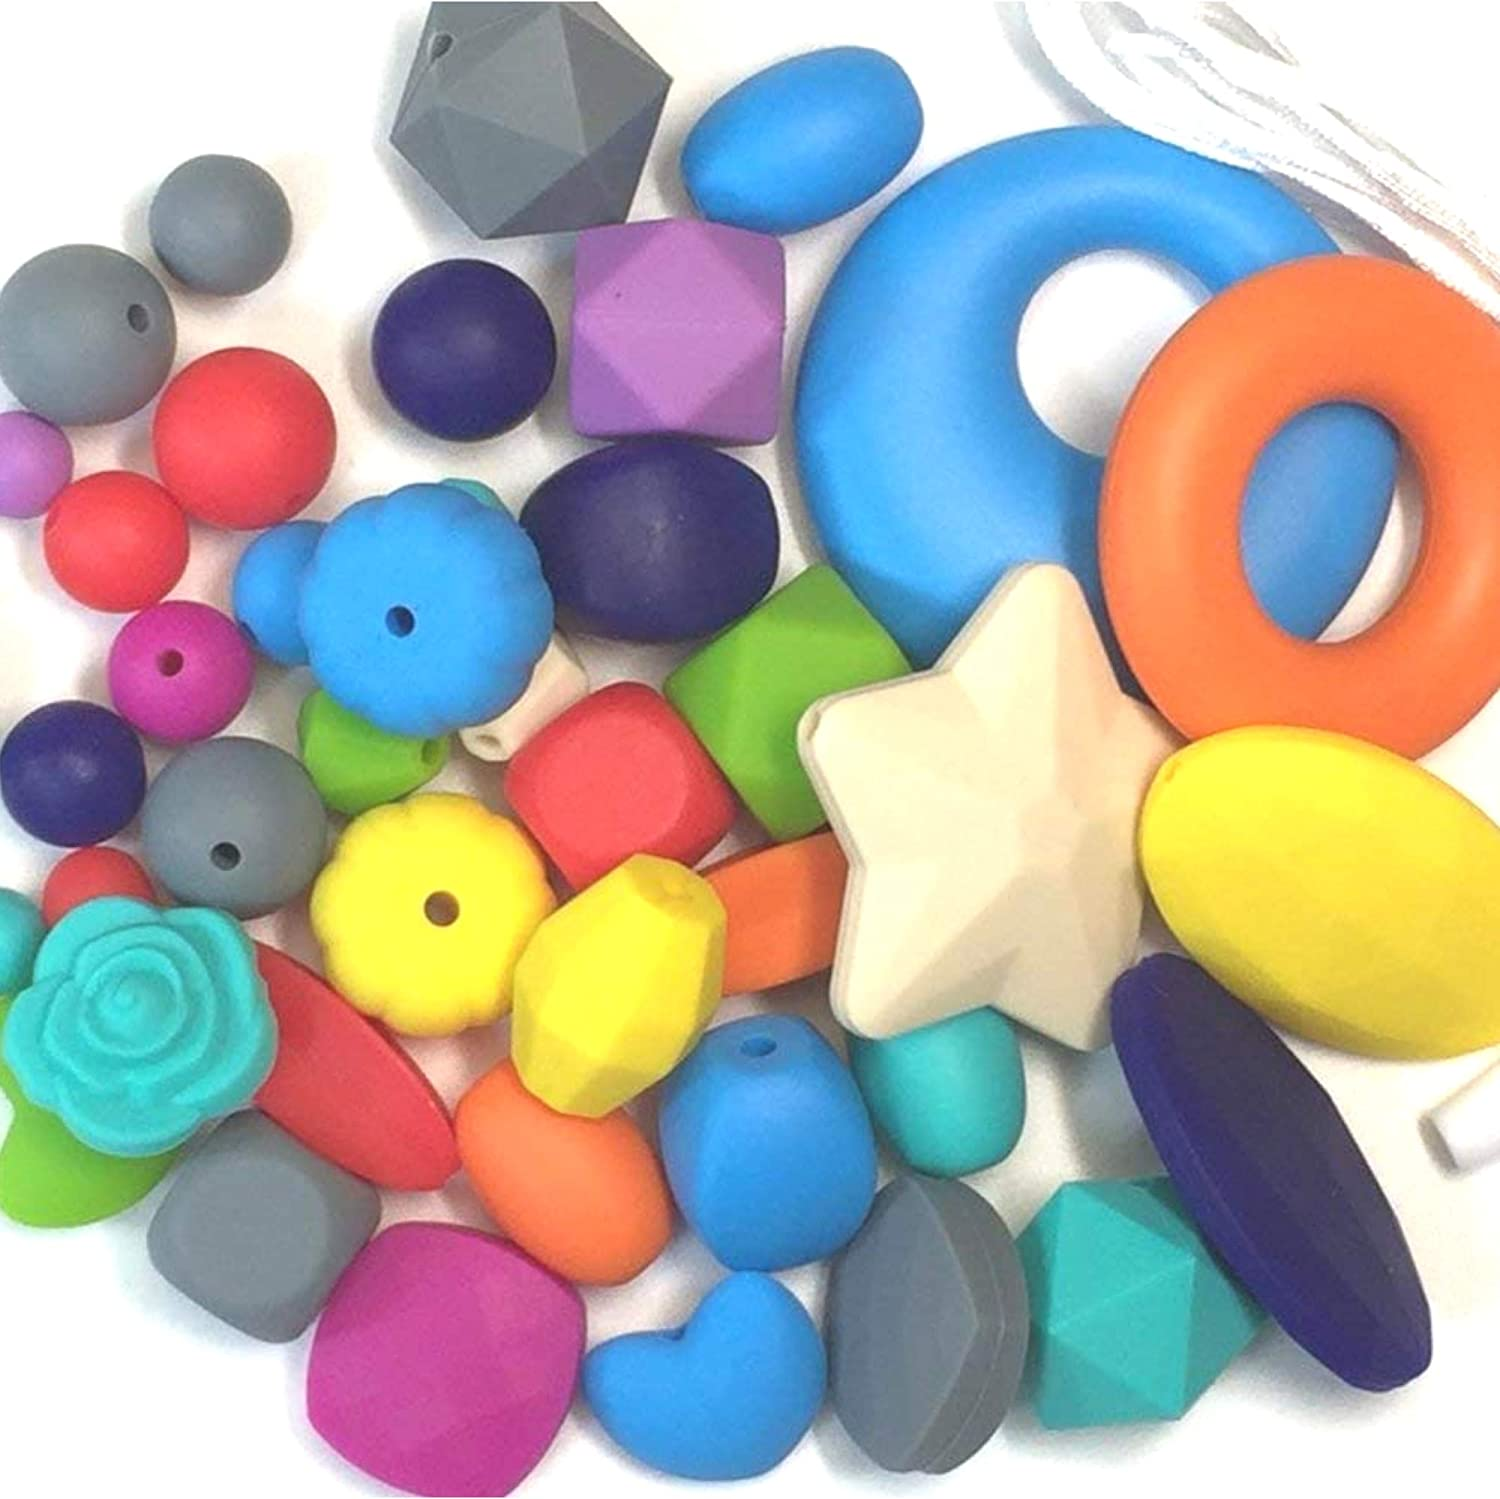 50PC Original Silicone Chew Bead Crafting Set, Assorted Colors, Shapes (Round & Non-Round) & Sizes, Includes Nylon Rope & Clasps for Necklaces and Bracelets, Jewelry Kit